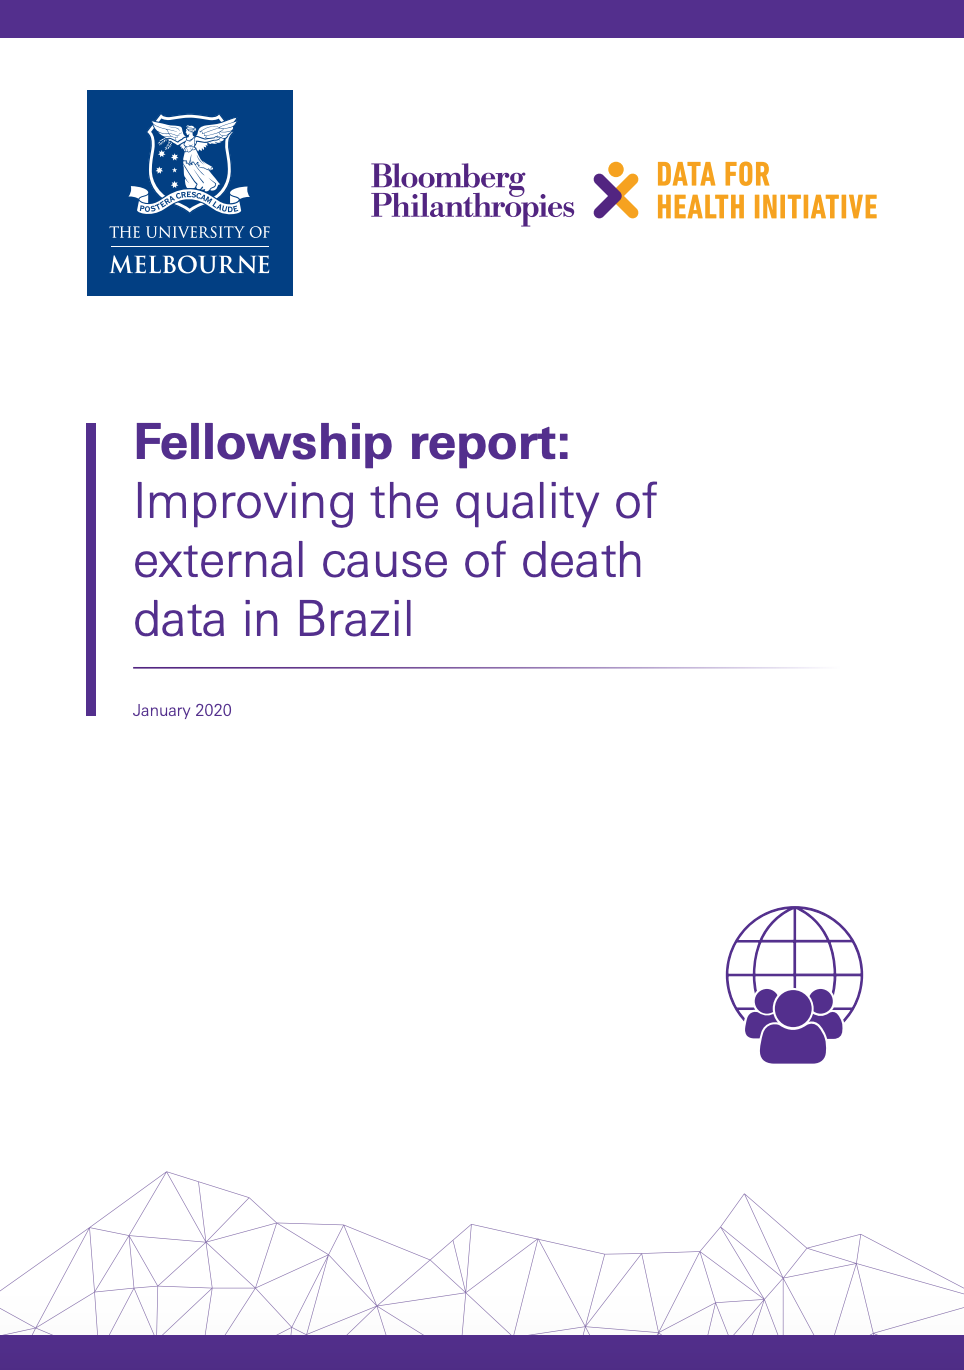 Fellowship report: Improving the quality of external cause of death data in Brazil thumbnail